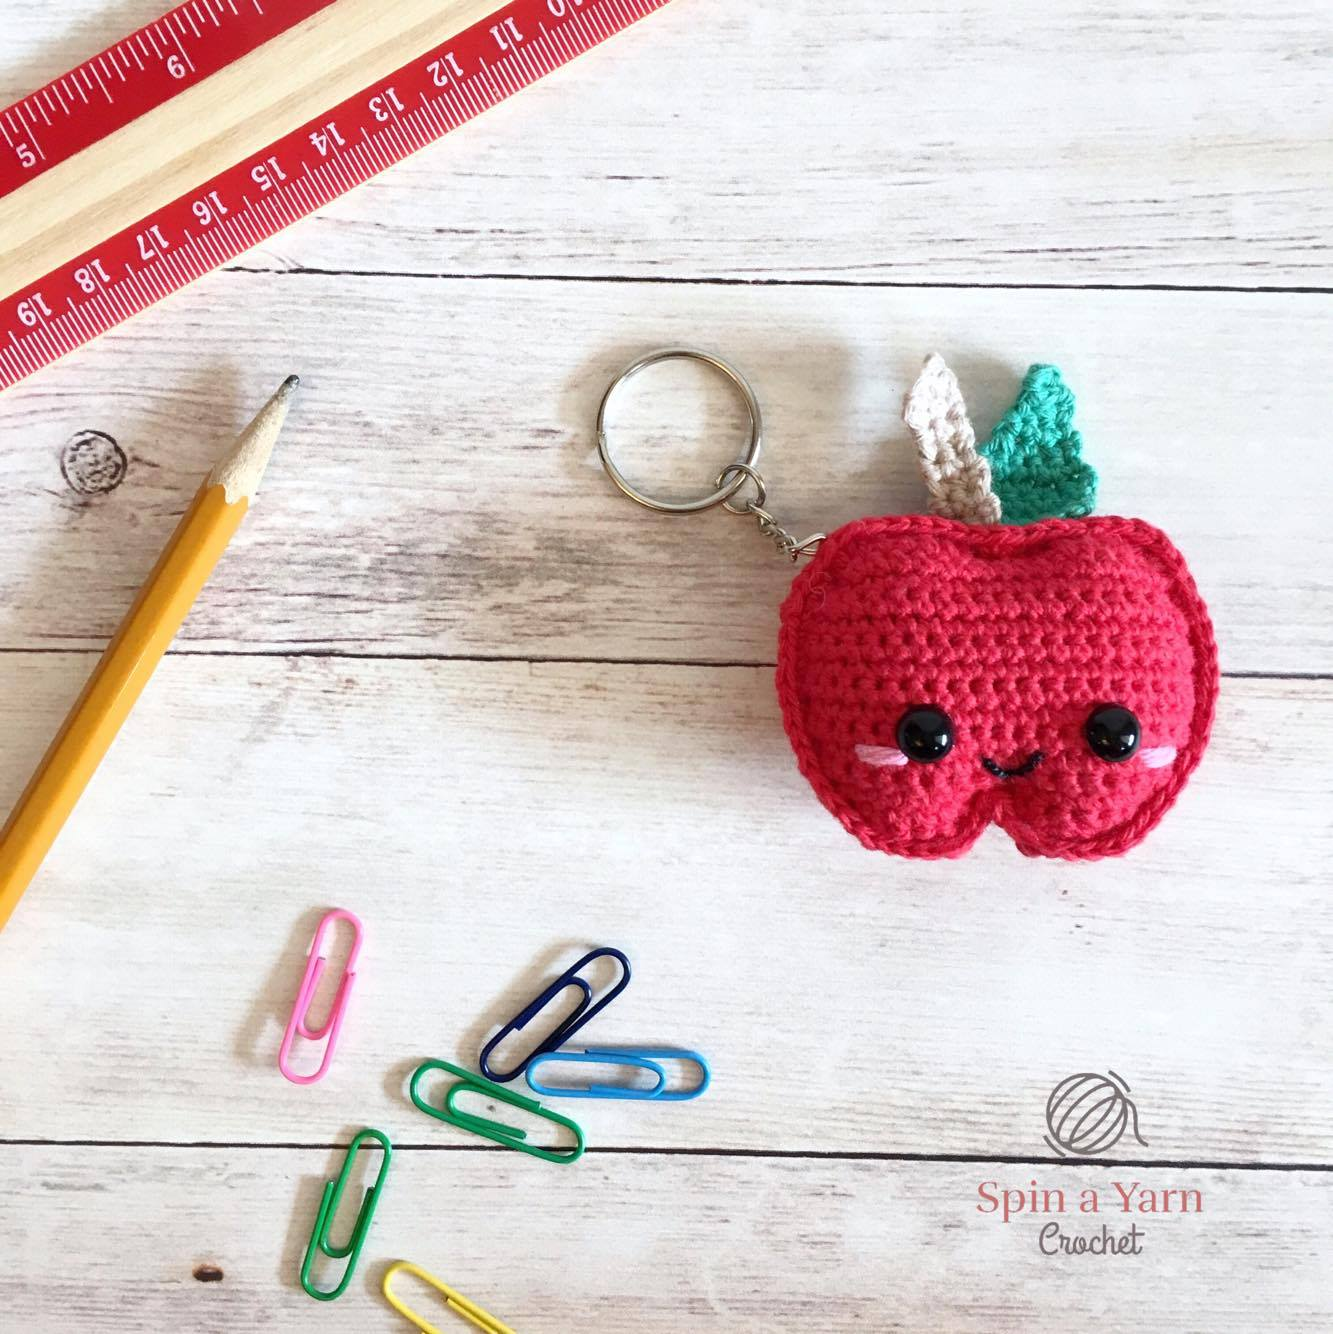 graphic about Free Printable Crochet Patterns titled Kawaii Apple Keychain No cost Crochet Behavior Spin a Yarn Crochet